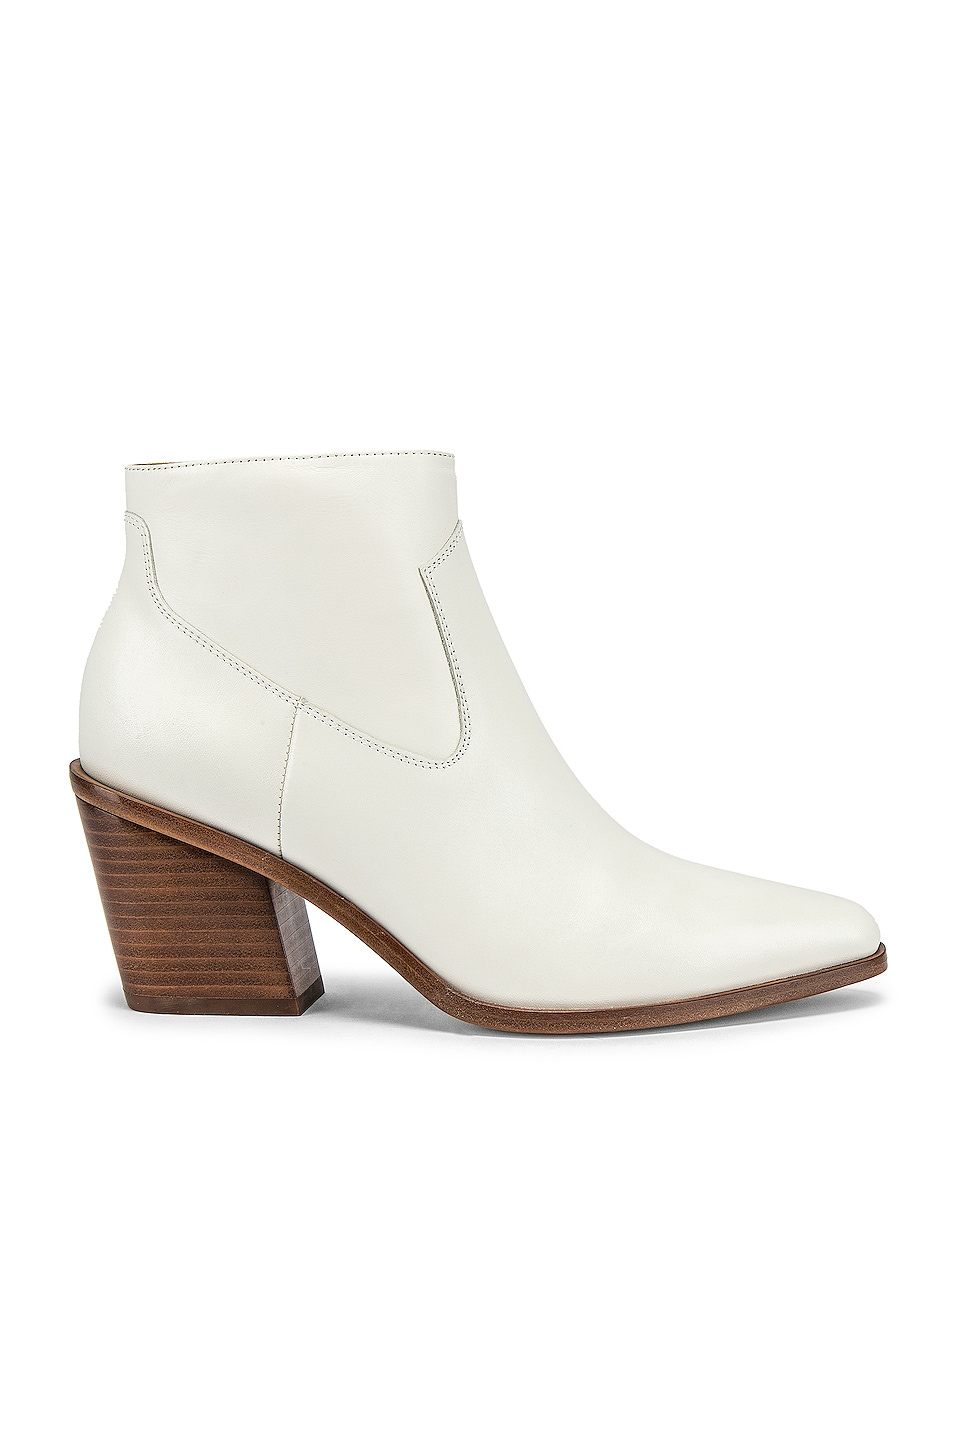 Rag & Bone Razor Boot in Antique White